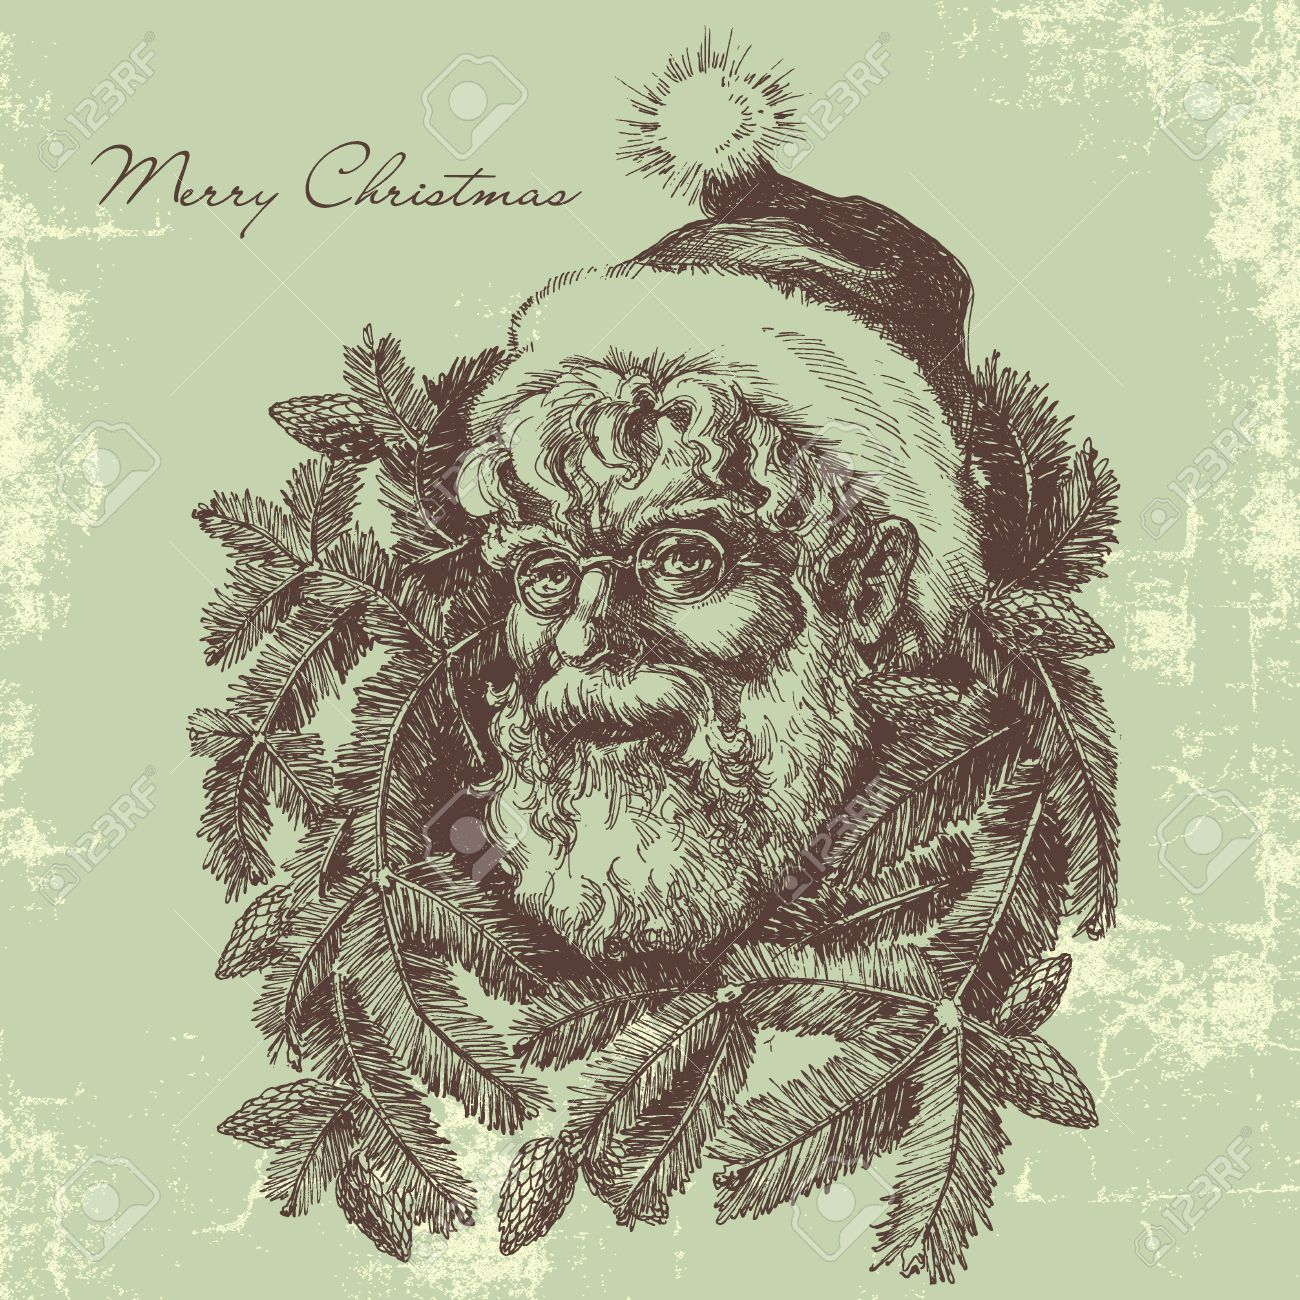 Vintage Santa Claus Sketch Portrait, Christmas Card In Old Fashioned ...